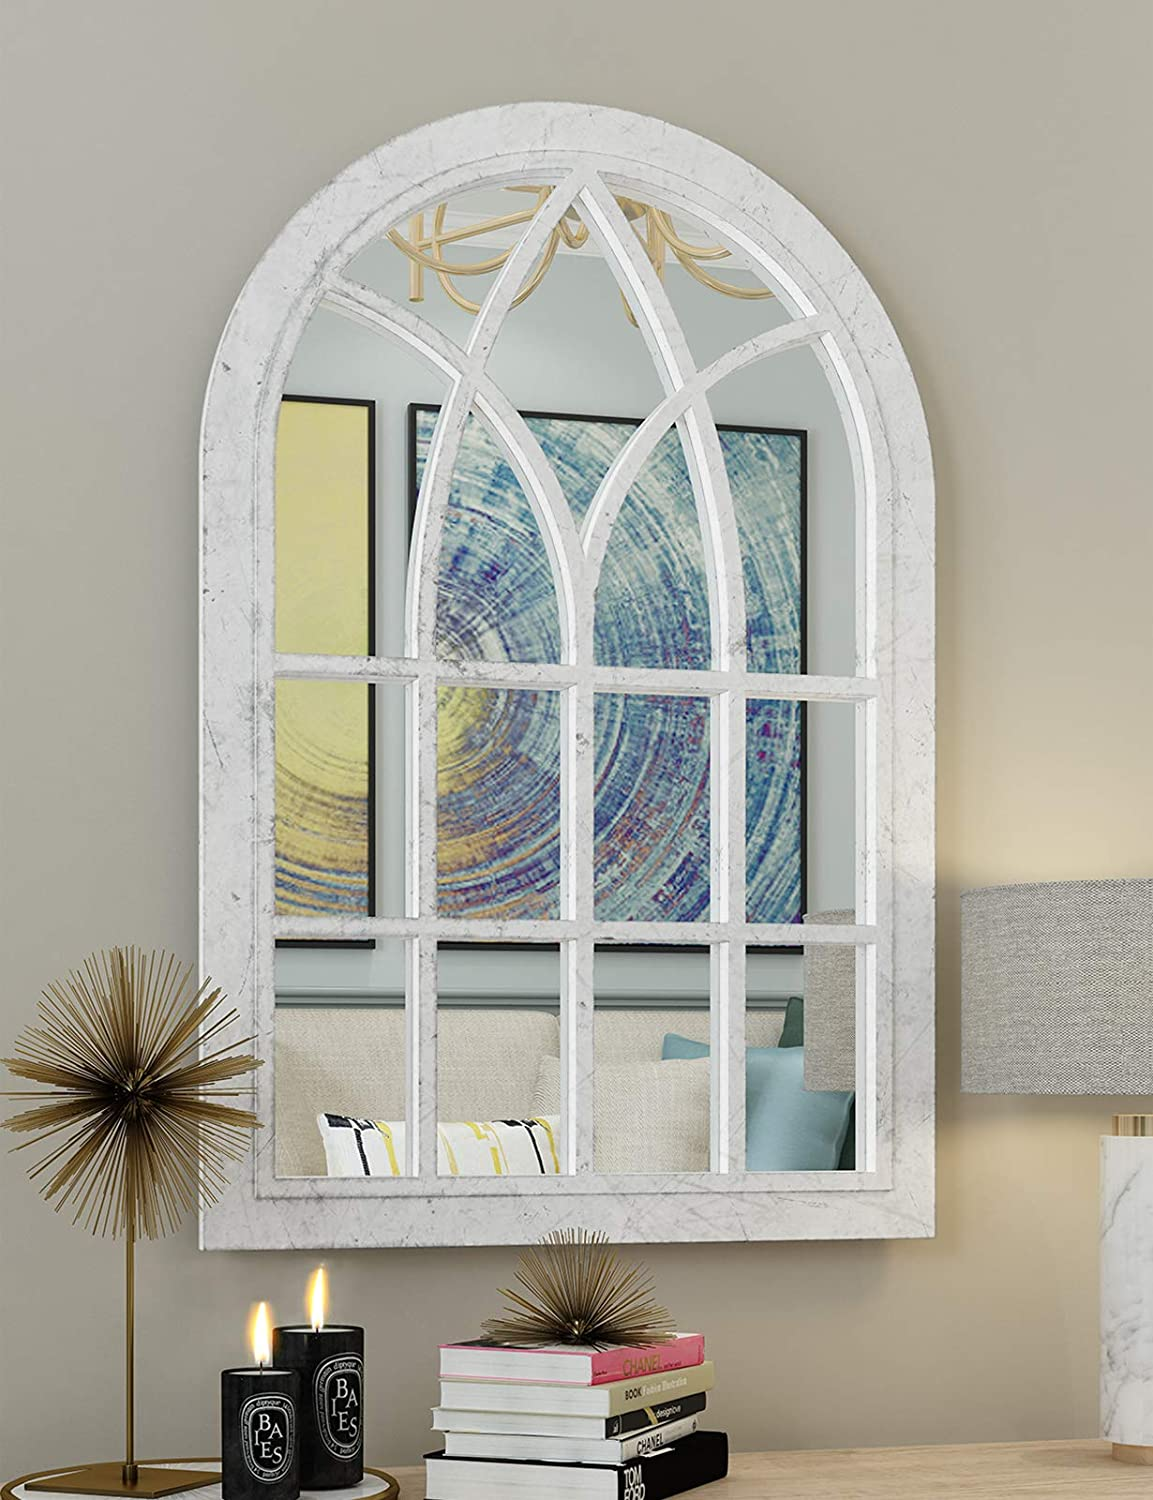 White Arched Windowpane Wall Mirror - Wall Mirror Decorative Farmhouse with Plastic Frame for Living Room Balcony Livingroom Washroom 36